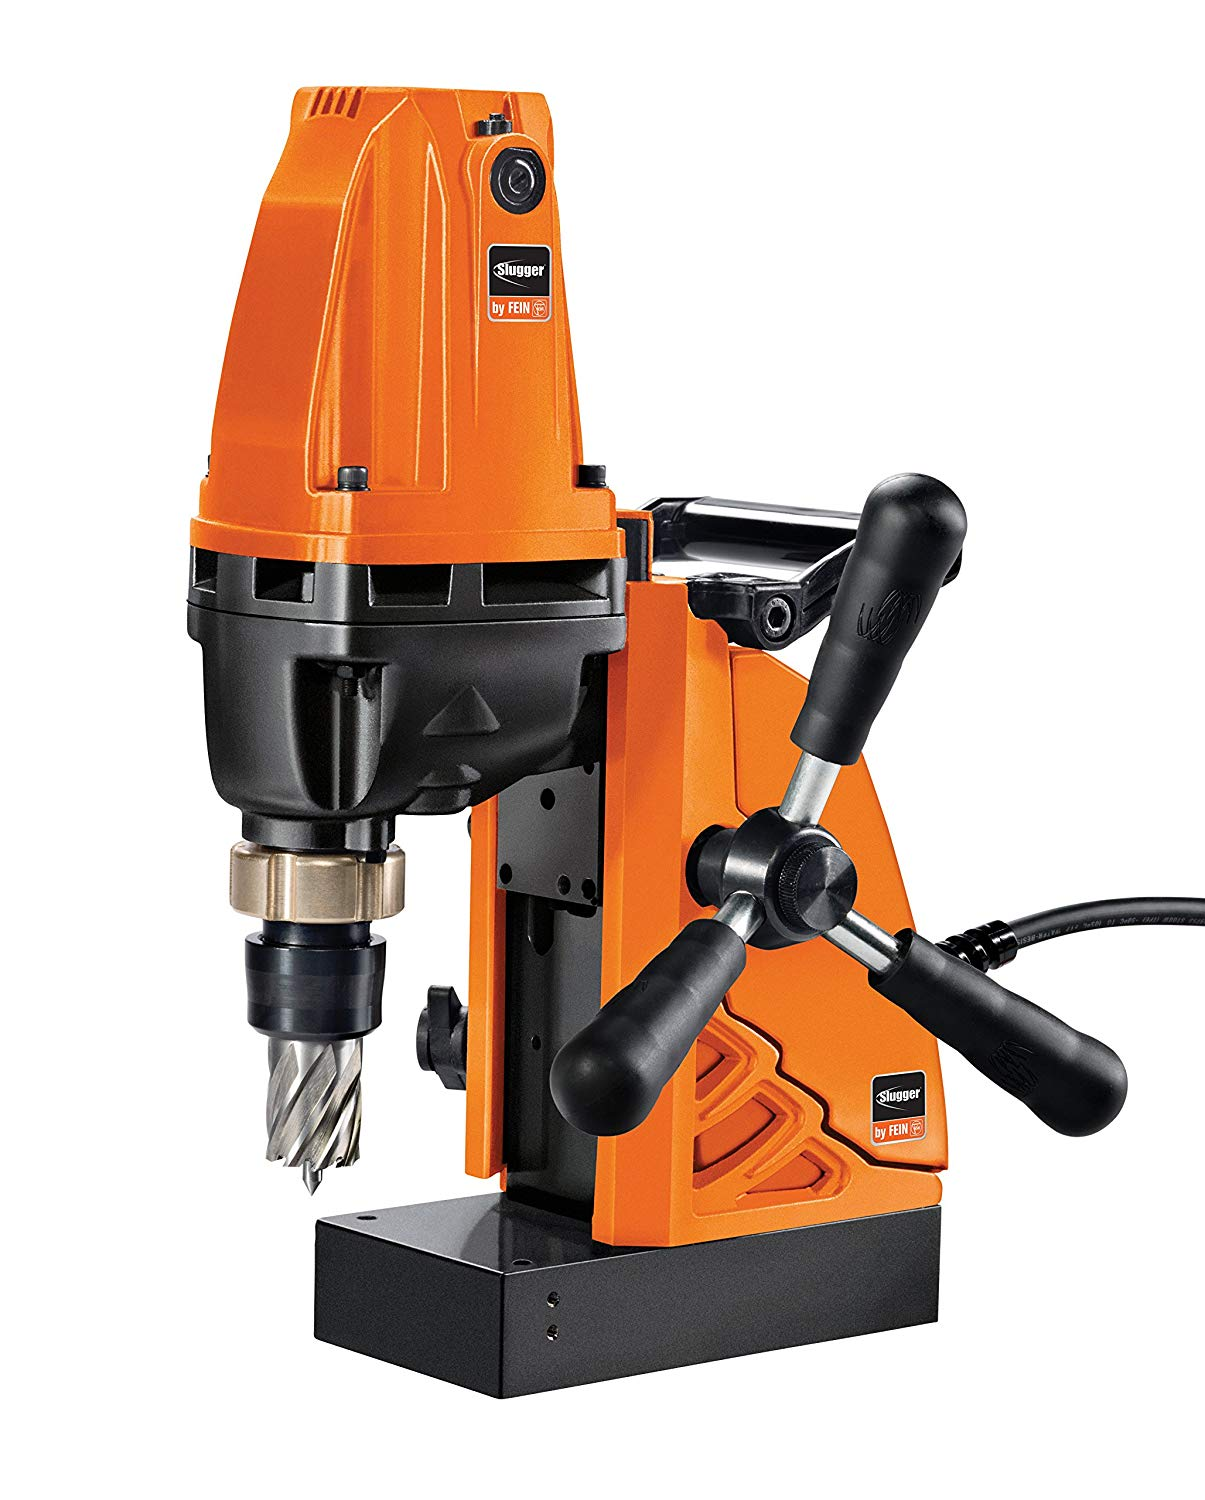 Jancy JHM Series ShortSlugger Magnetic Base Drilling Unit, 750W, 2